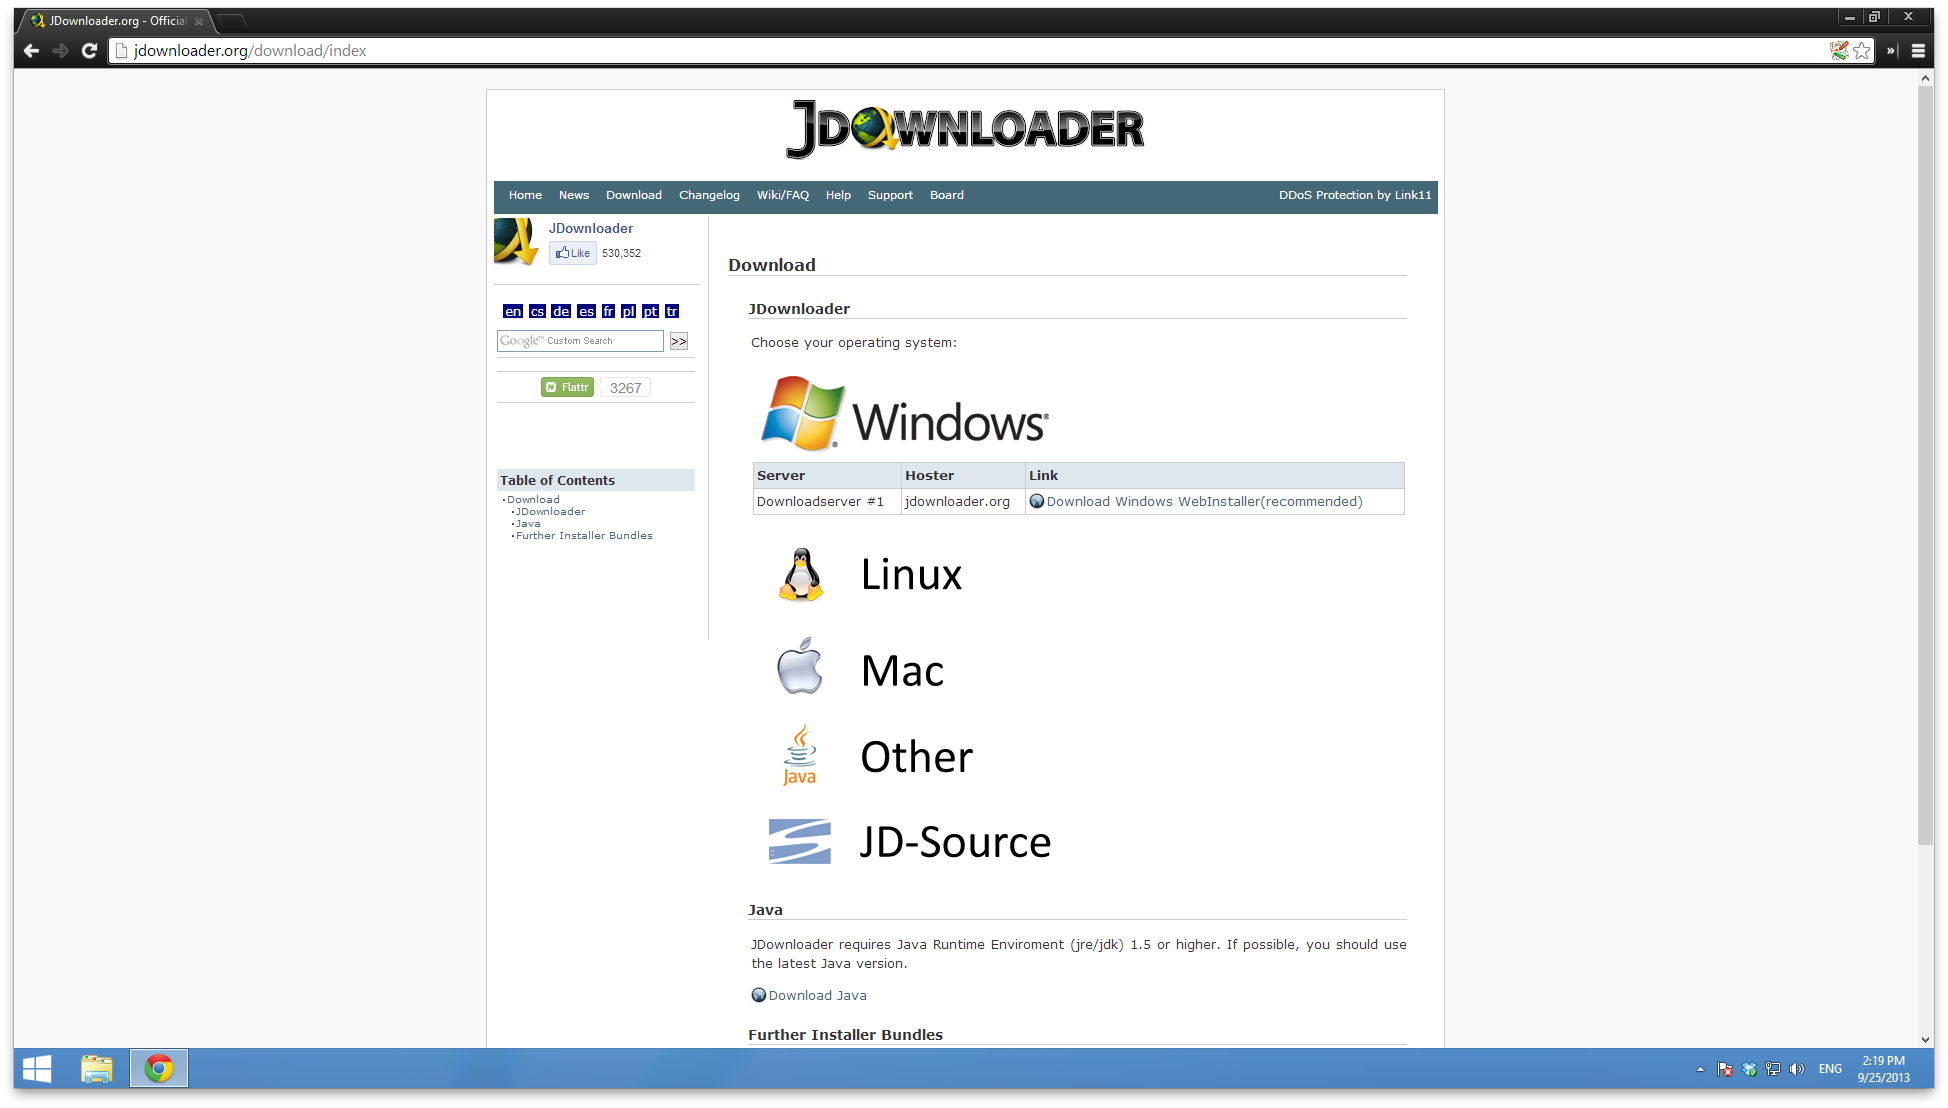 Step #1: Download & Install The Free Jdownloader Software (available For Mac  & Windows)